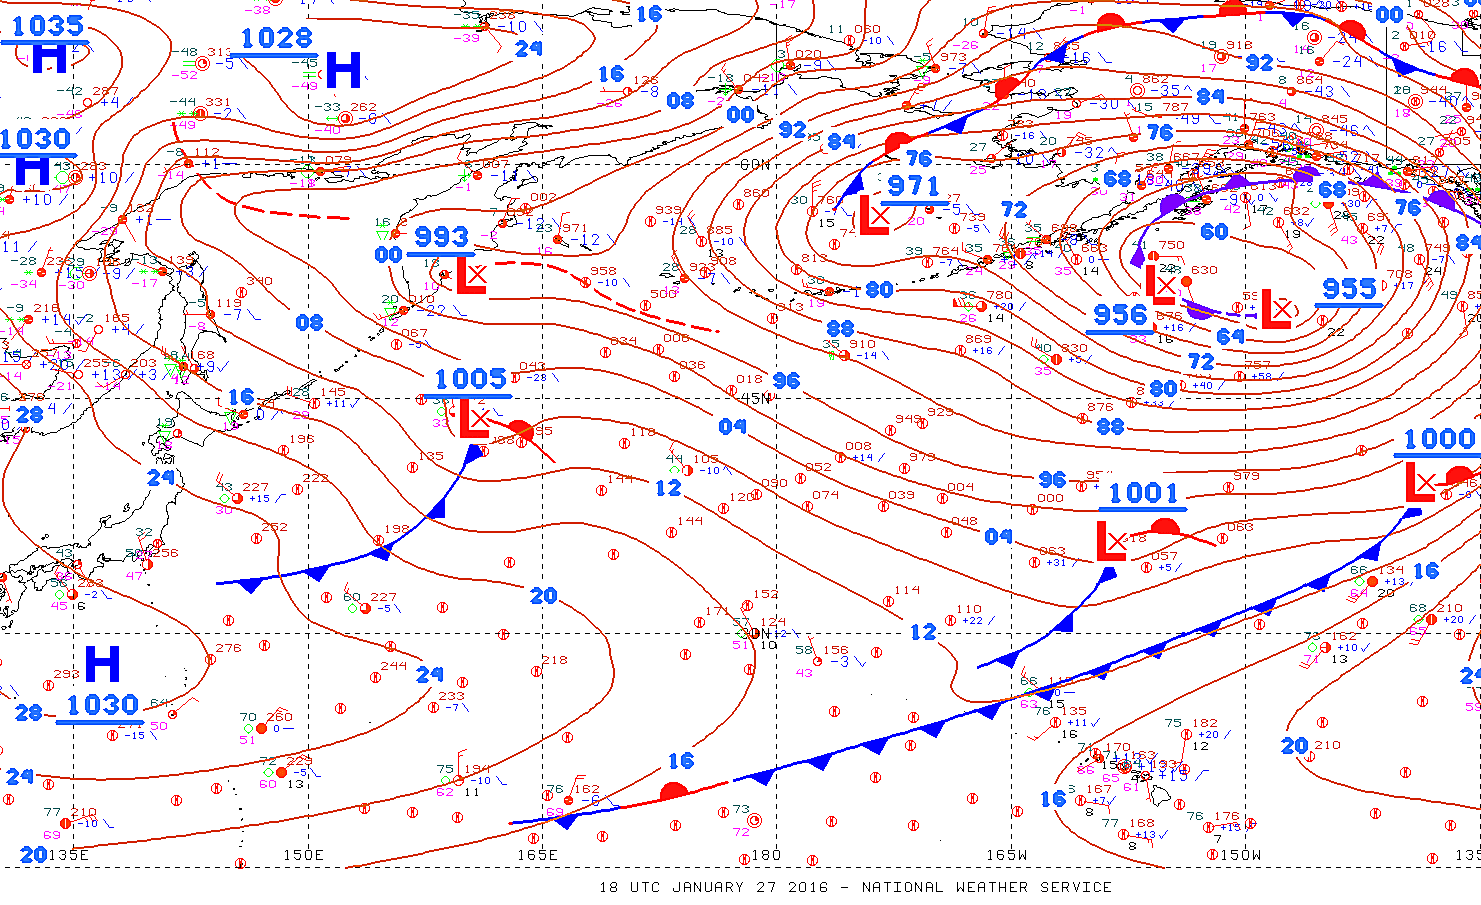 How to read symbols and colors on weather maps biocorpaavc